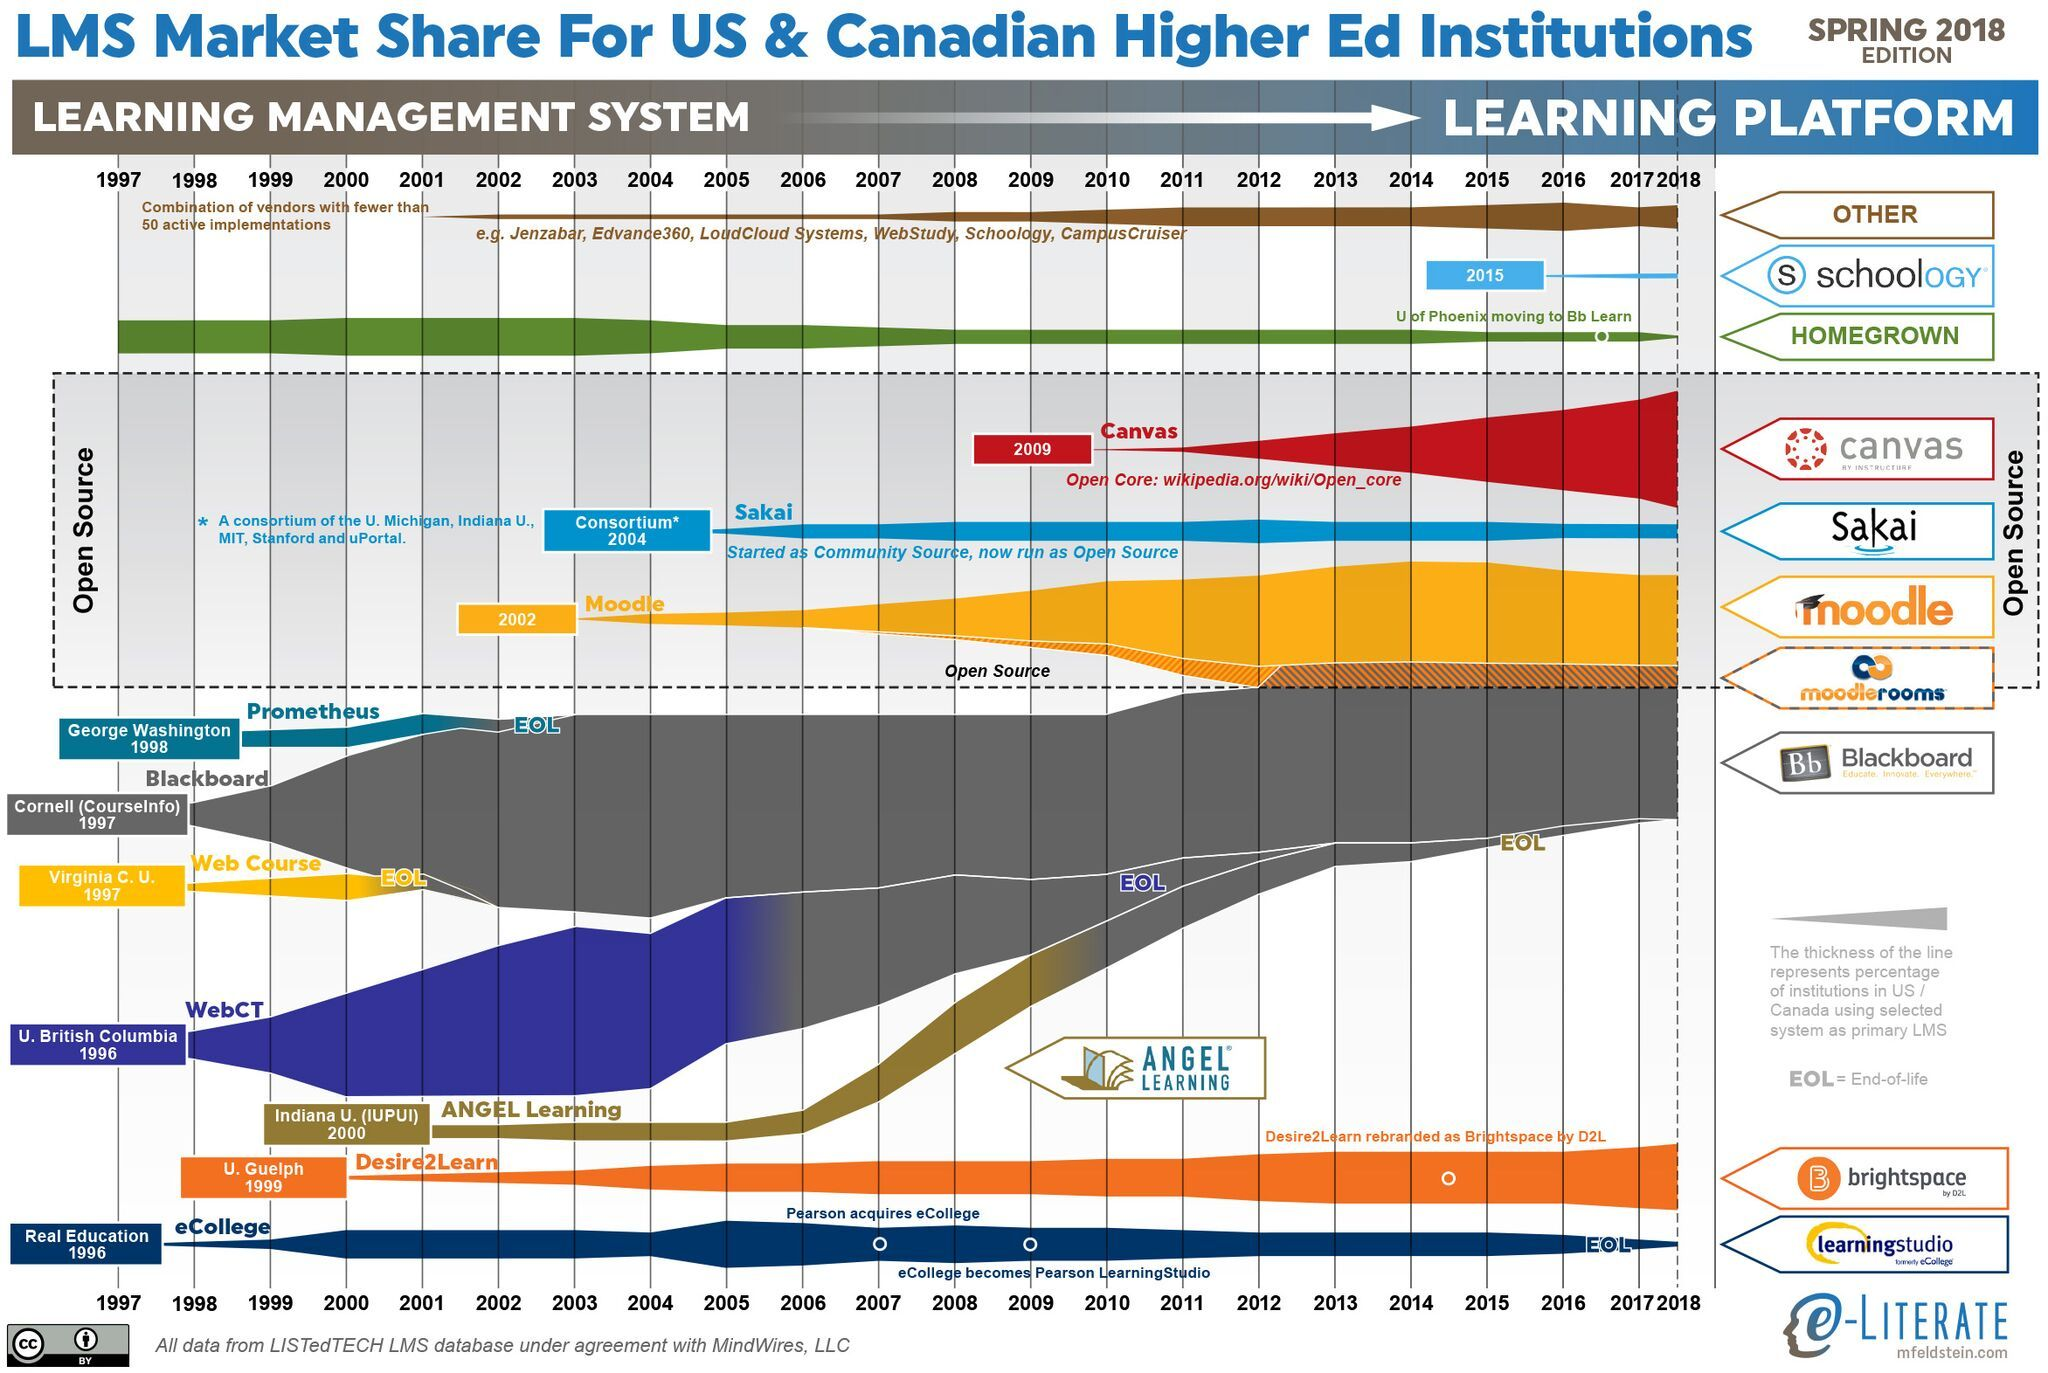 LMS history and Market Share